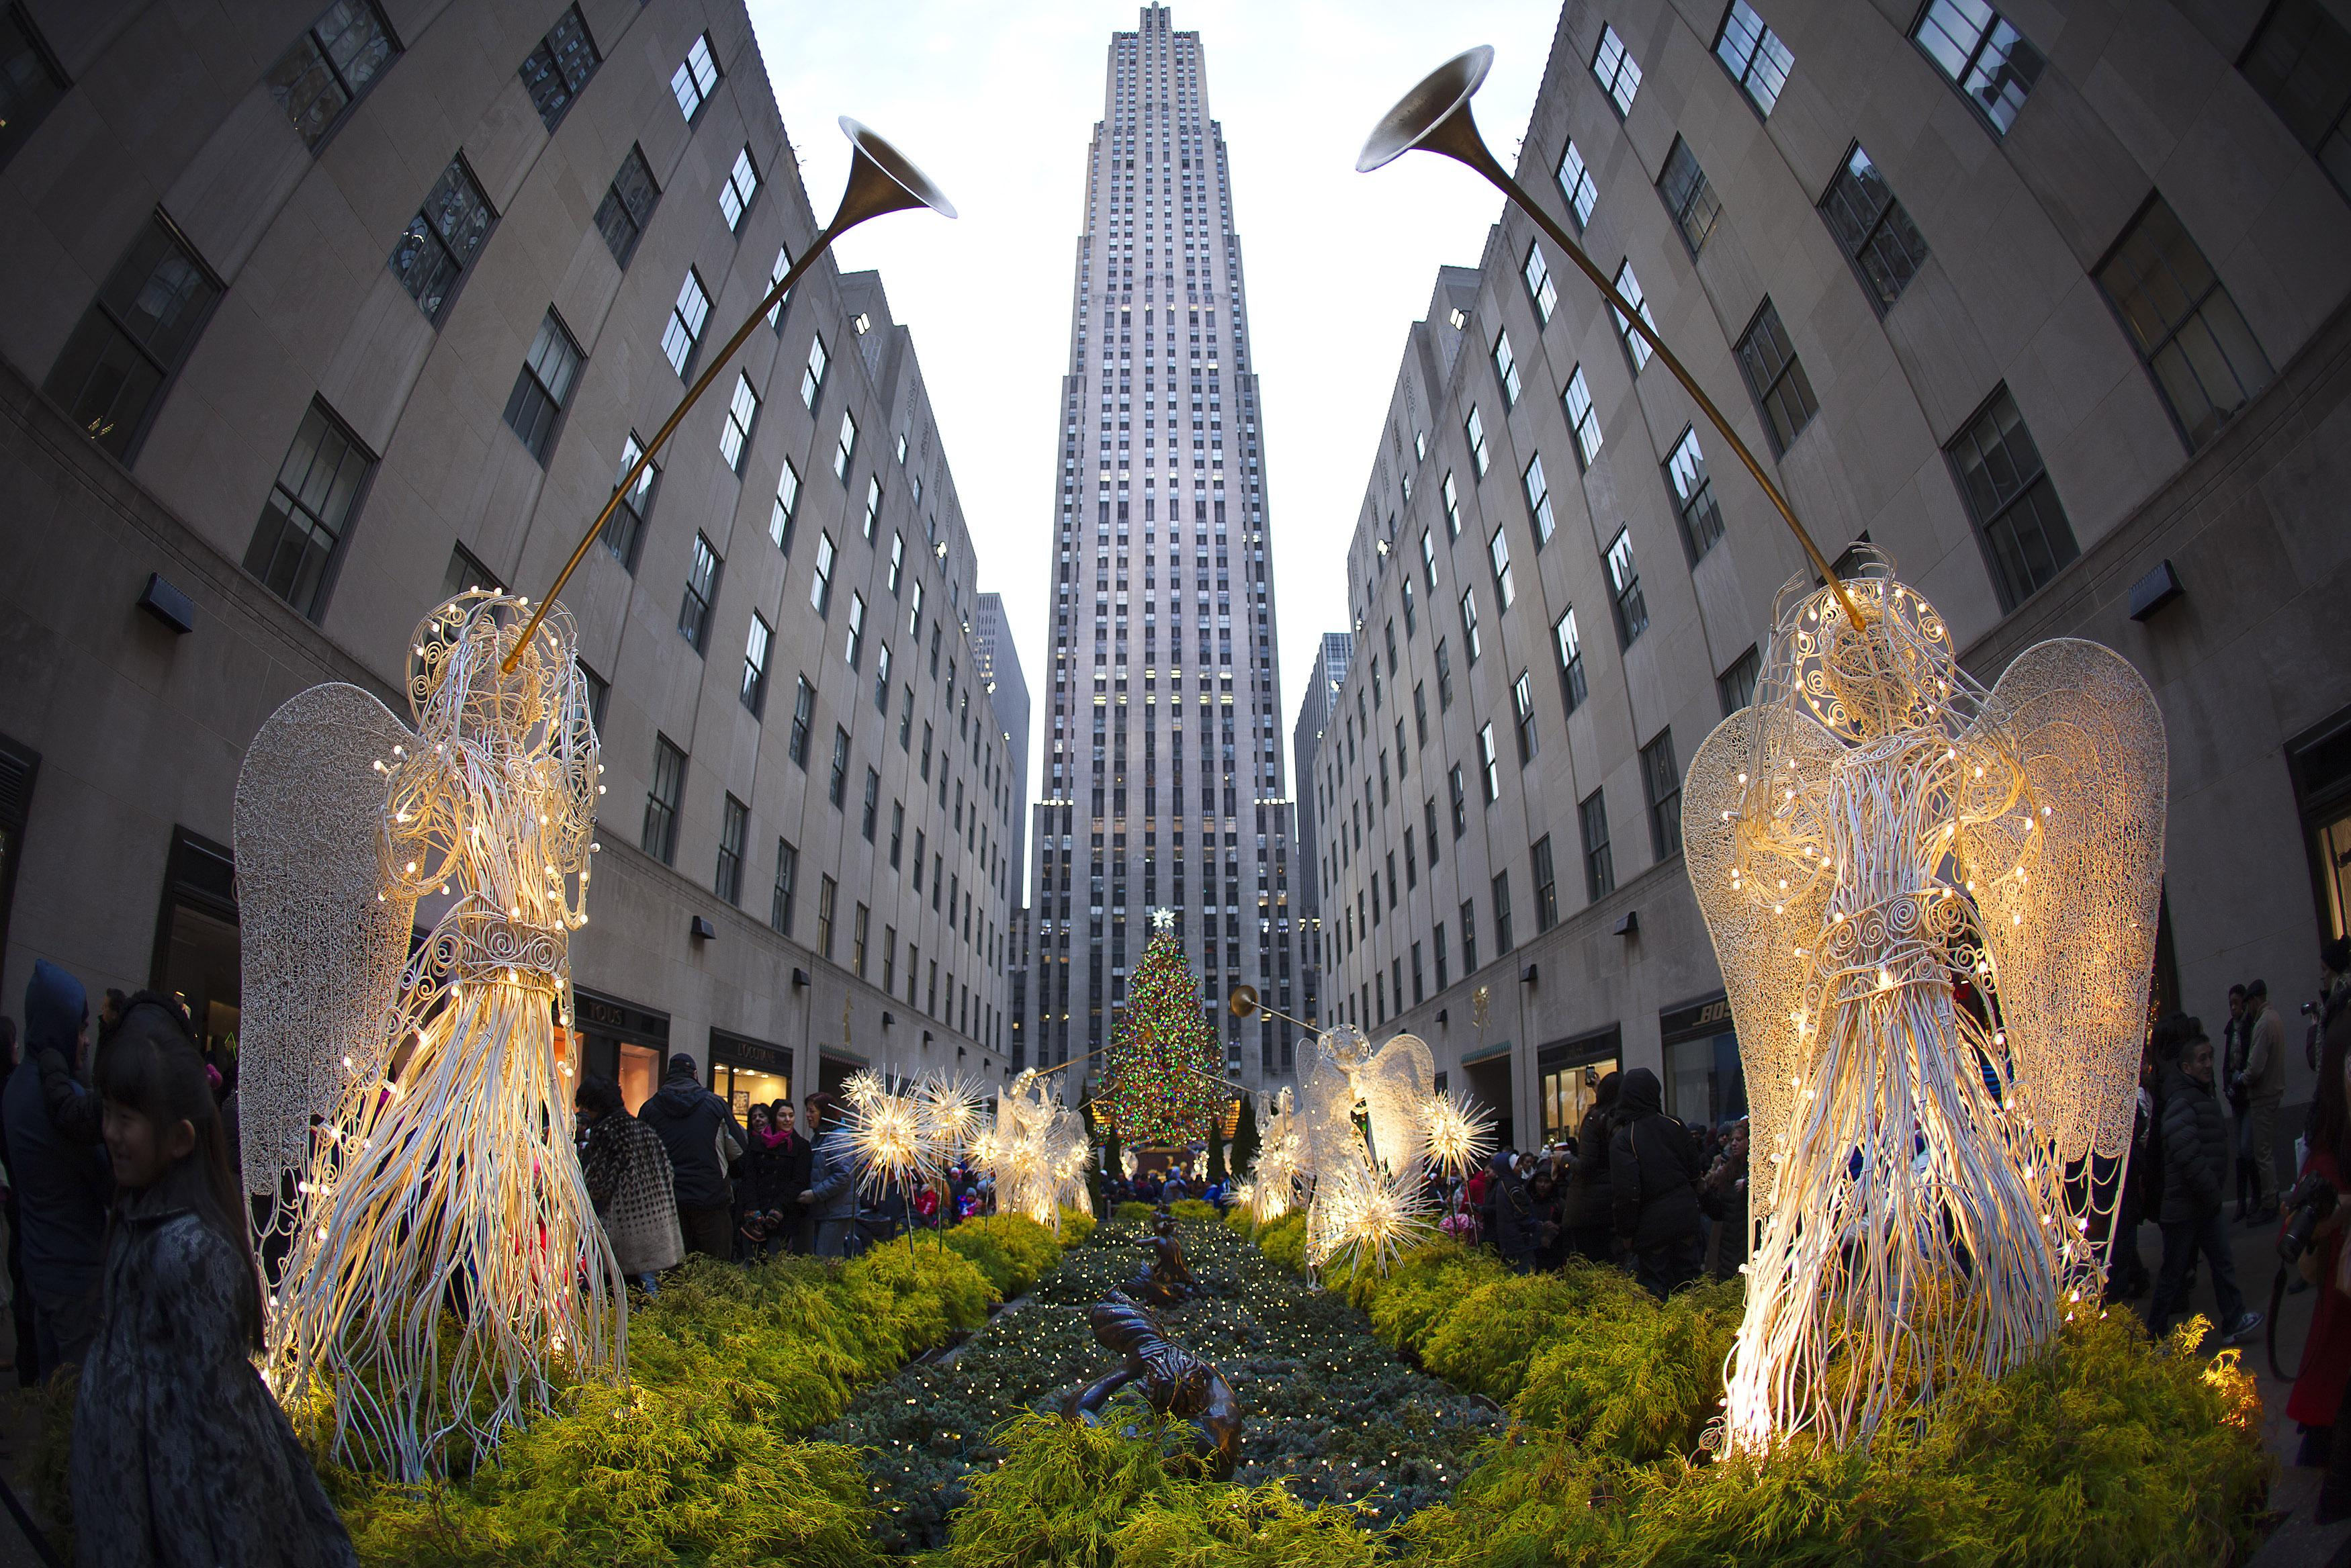 Christmas in new york top 13 things to do in nyc during for Things to do in new york in one day